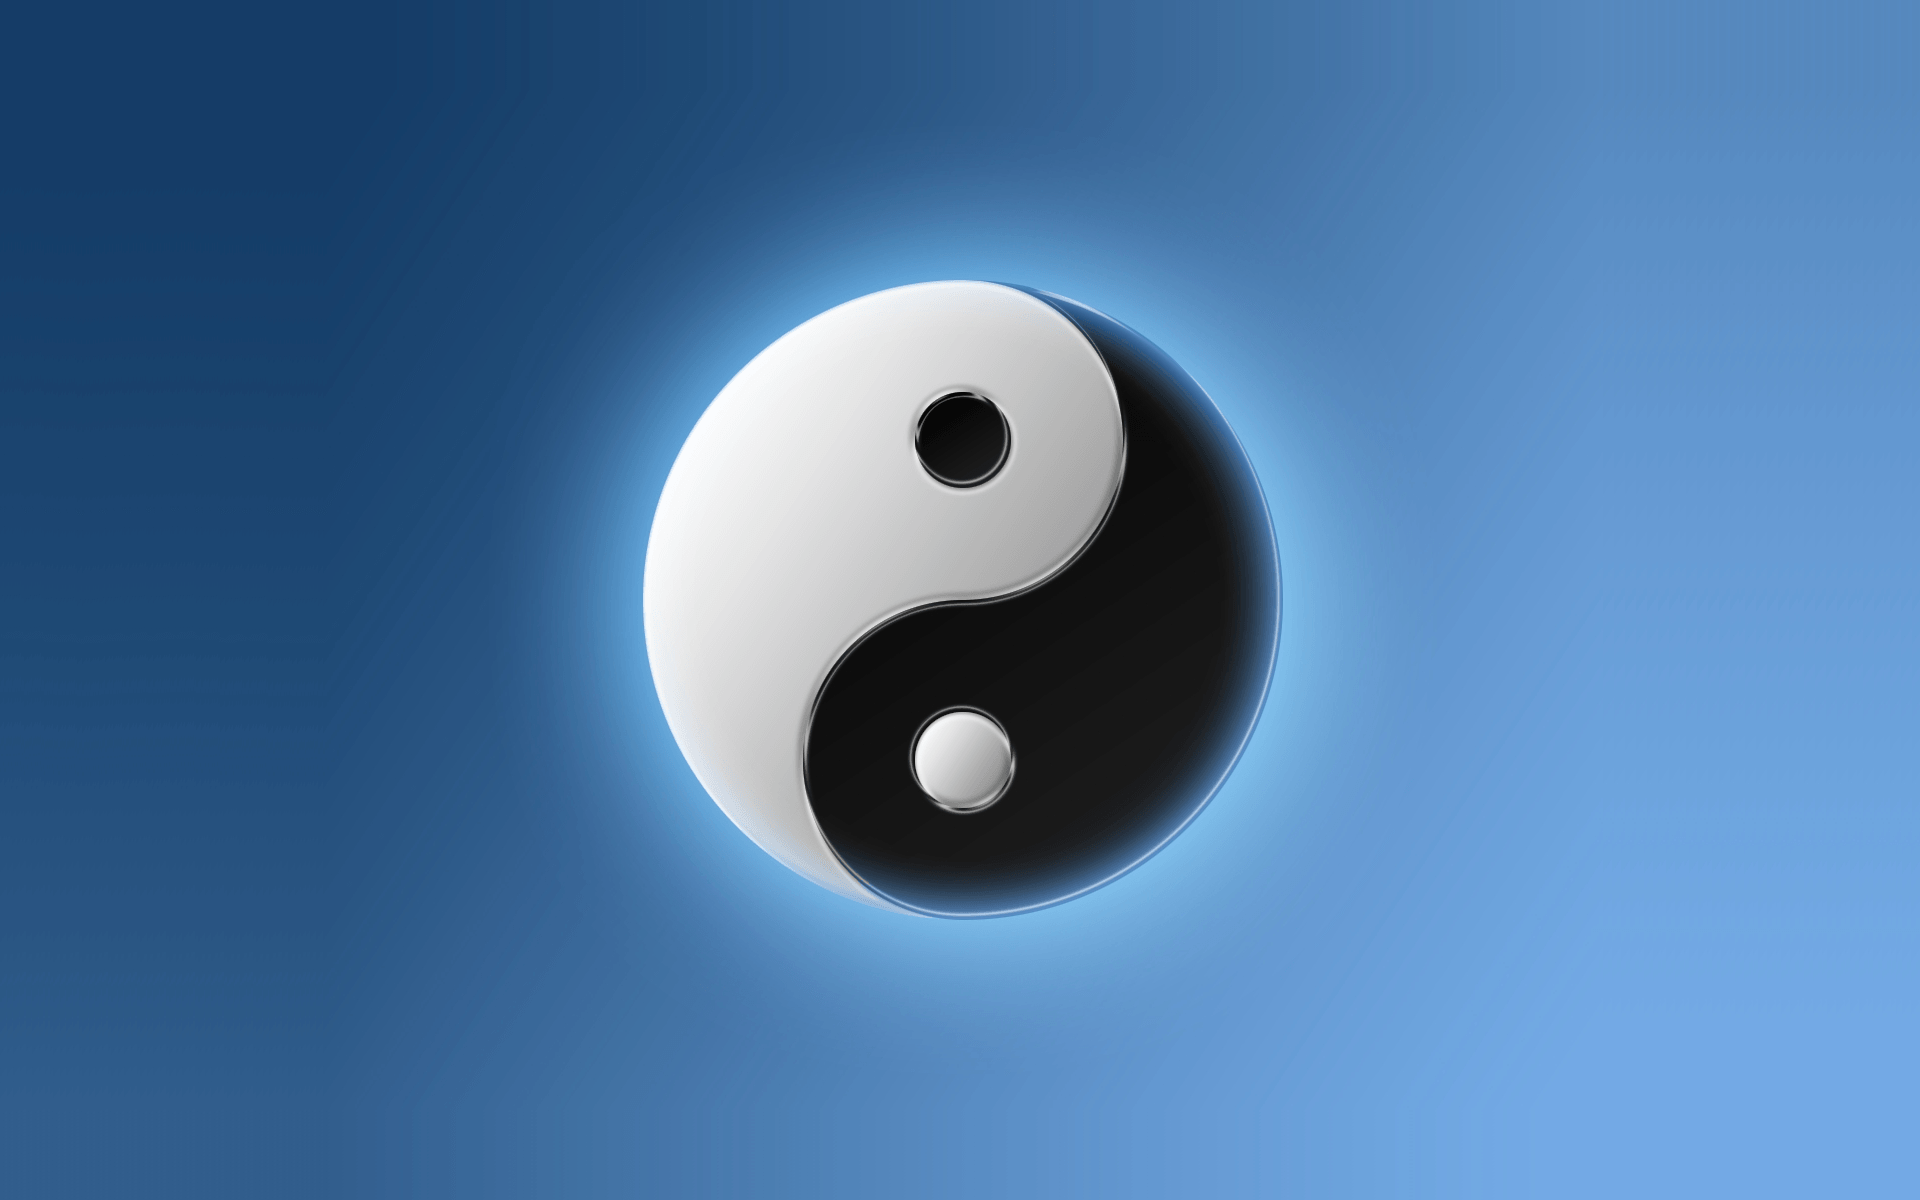 Wallpapers Yin Yang Hd